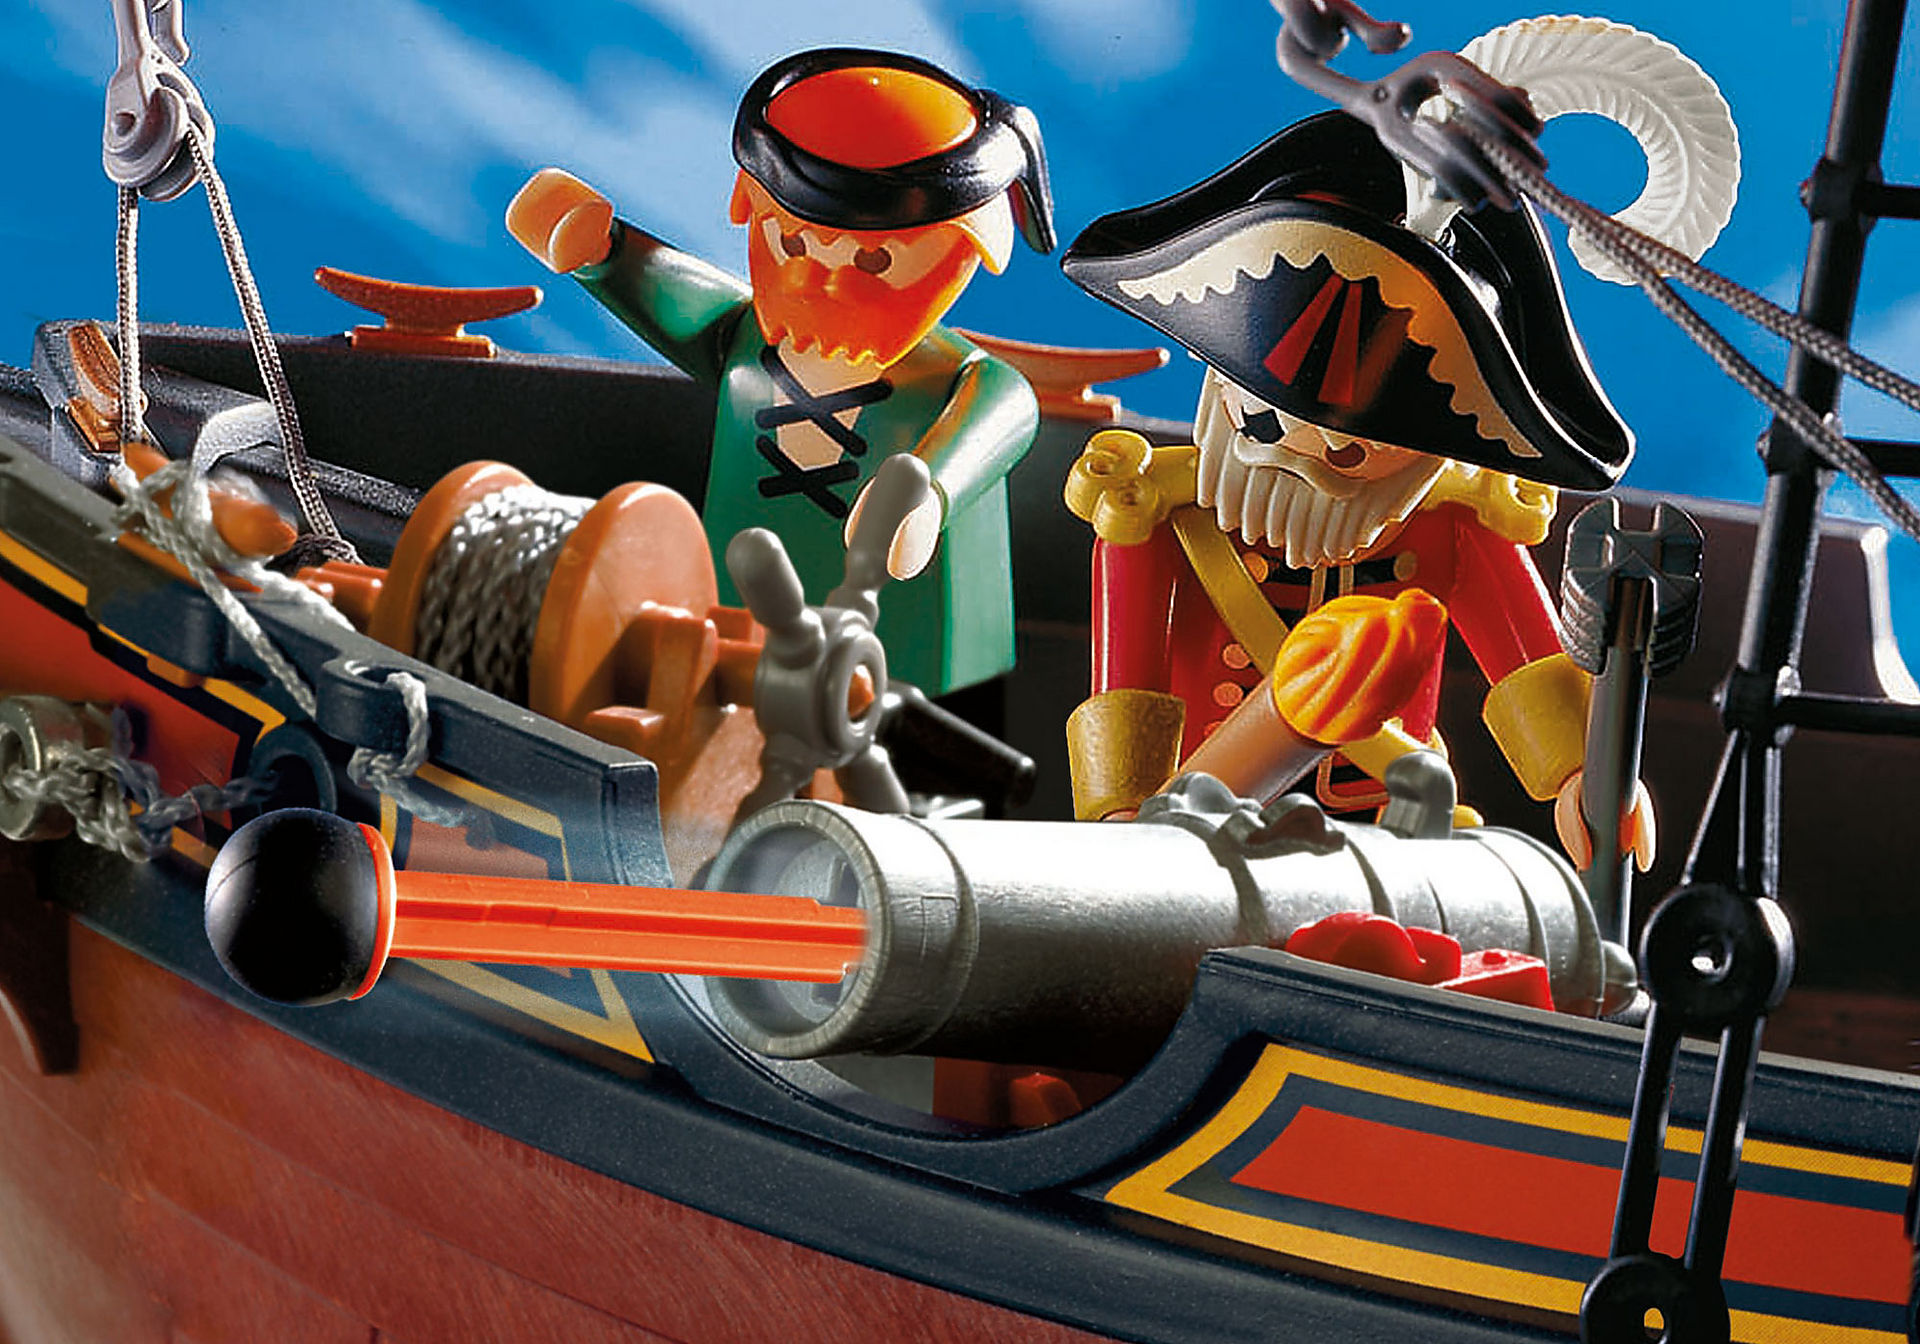 http://media.playmobil.com/i/playmobil/3900_product_extra2/Piratenkaperschiff